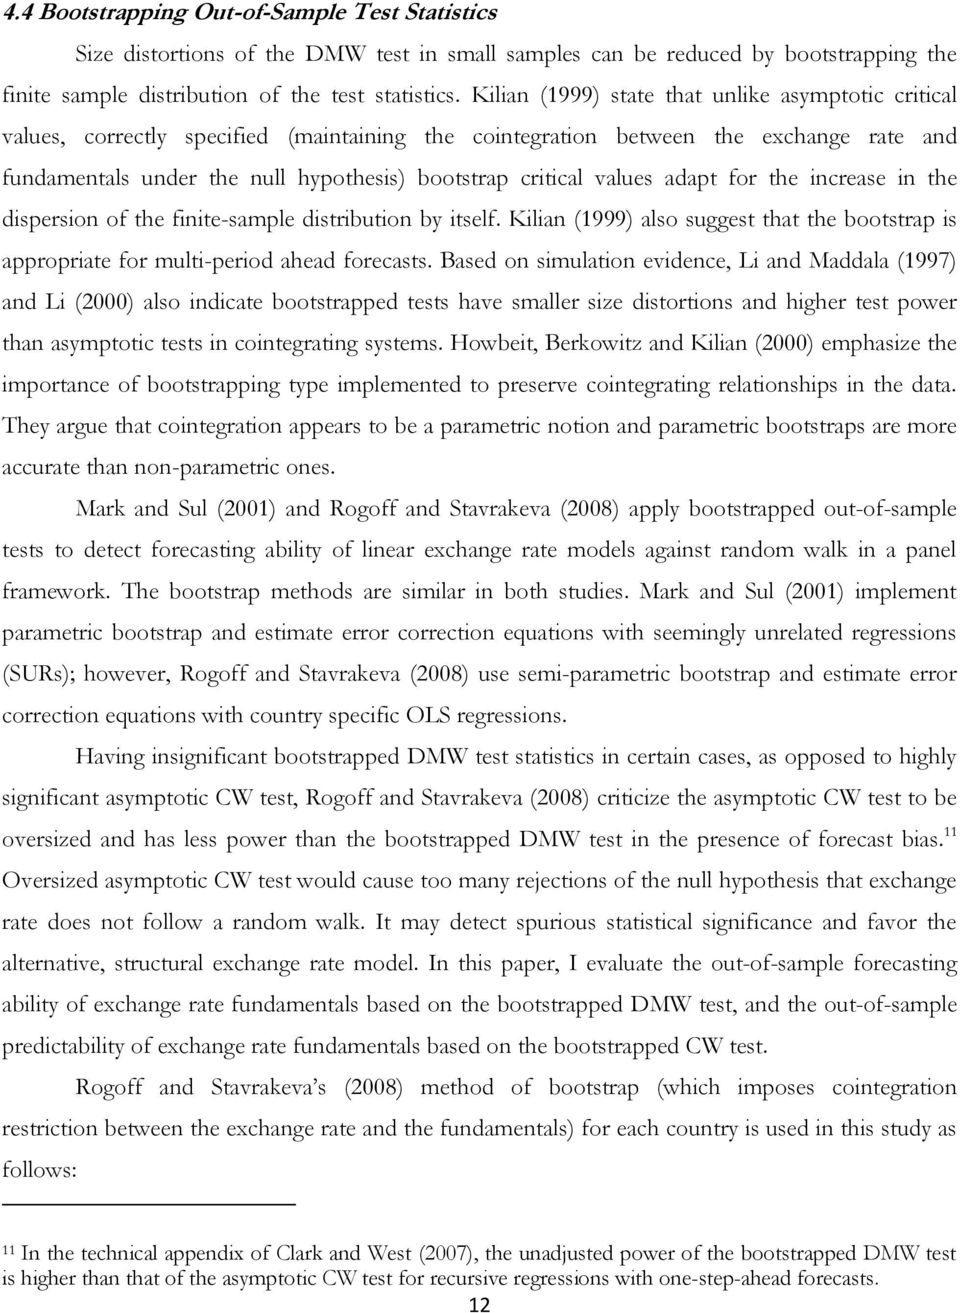 increase in he dispersion of he finie-sample disribuion by iself. Kilian (999) also sugges ha he boosrap is appropriae for muli-period ahead forecass.